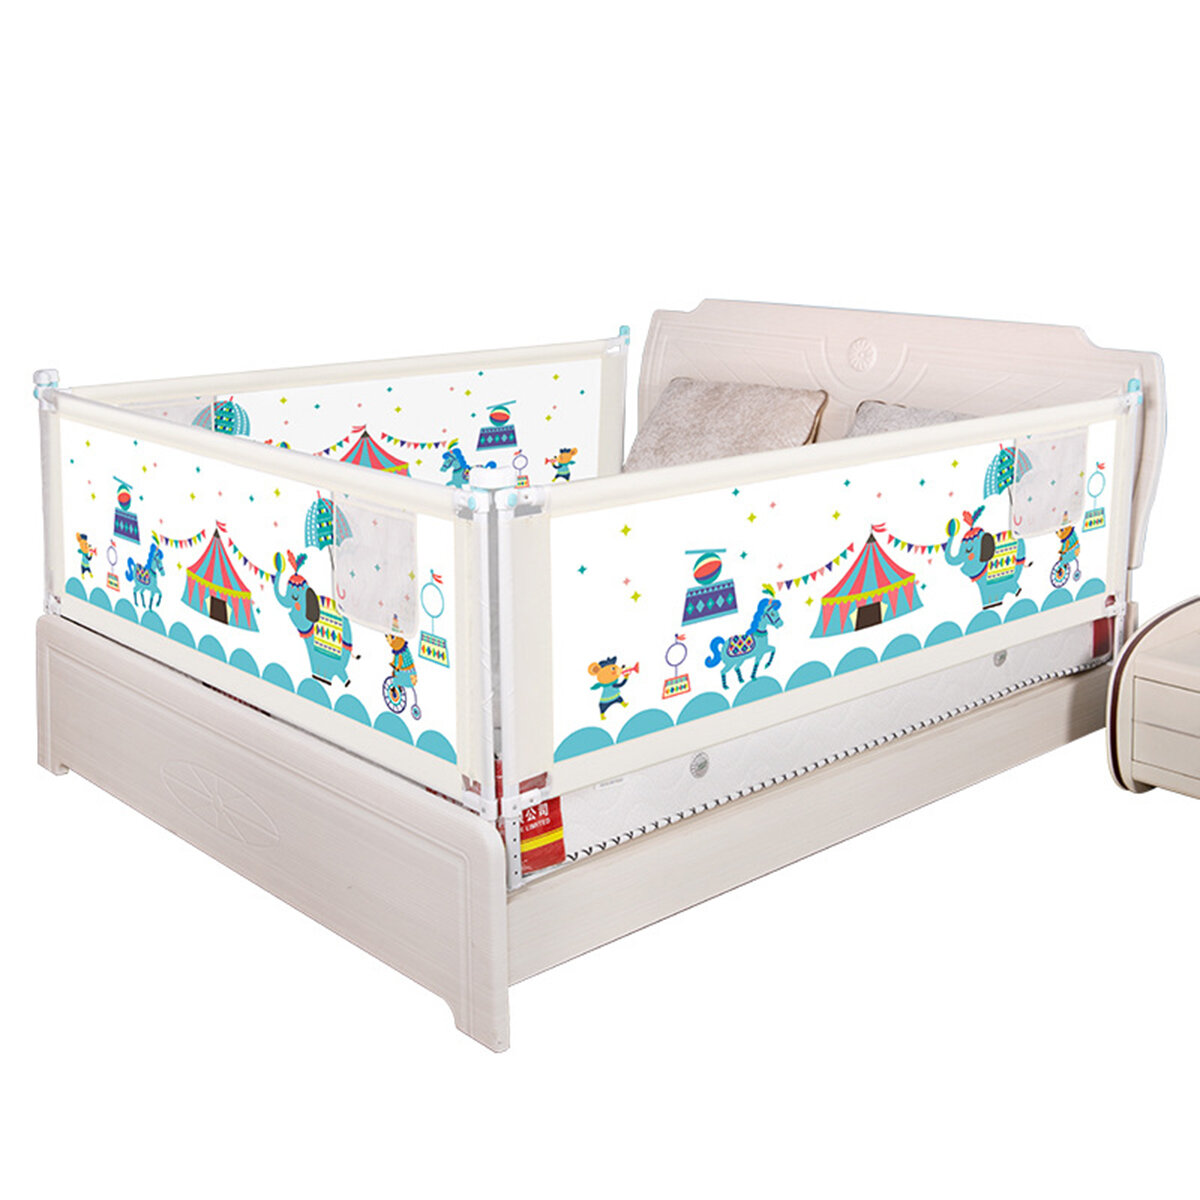 1.5/1.8/2m 8-Levels Adjustable Height Baby Bed Rail Fence Guardrail with Double Button Lock Toddler Safety Gate Children